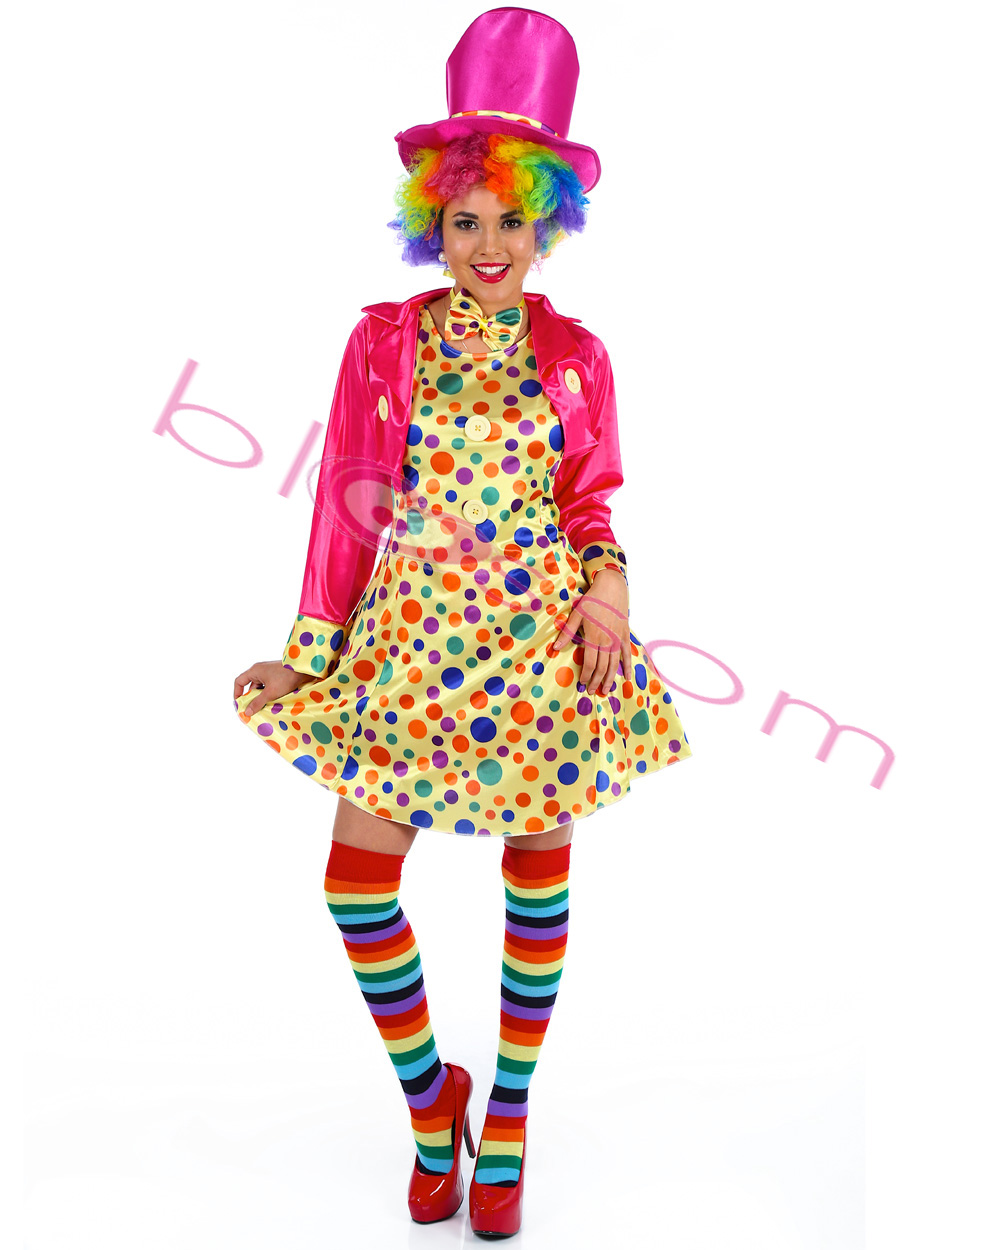 K10 Ladies Funny Clown Costume Circus Carnival Fancy Dress Birthday Party Outfit